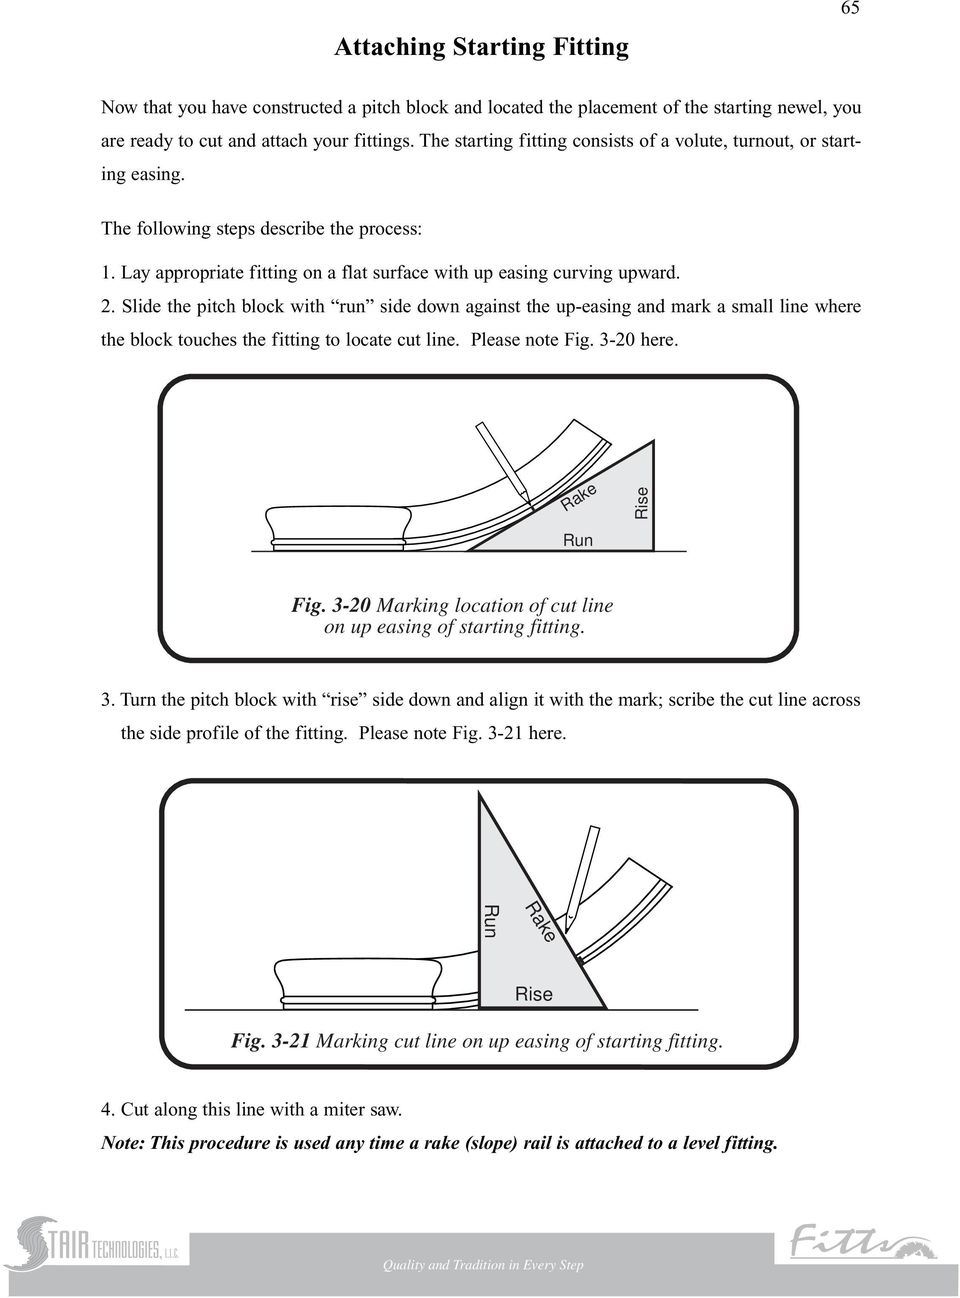 Slide the pitch block with run side down against the up-easing and mark a small line where the block touches the fitting to locate cut line. Please note Fig. 3-20 here. Rake Rise Run Fig.